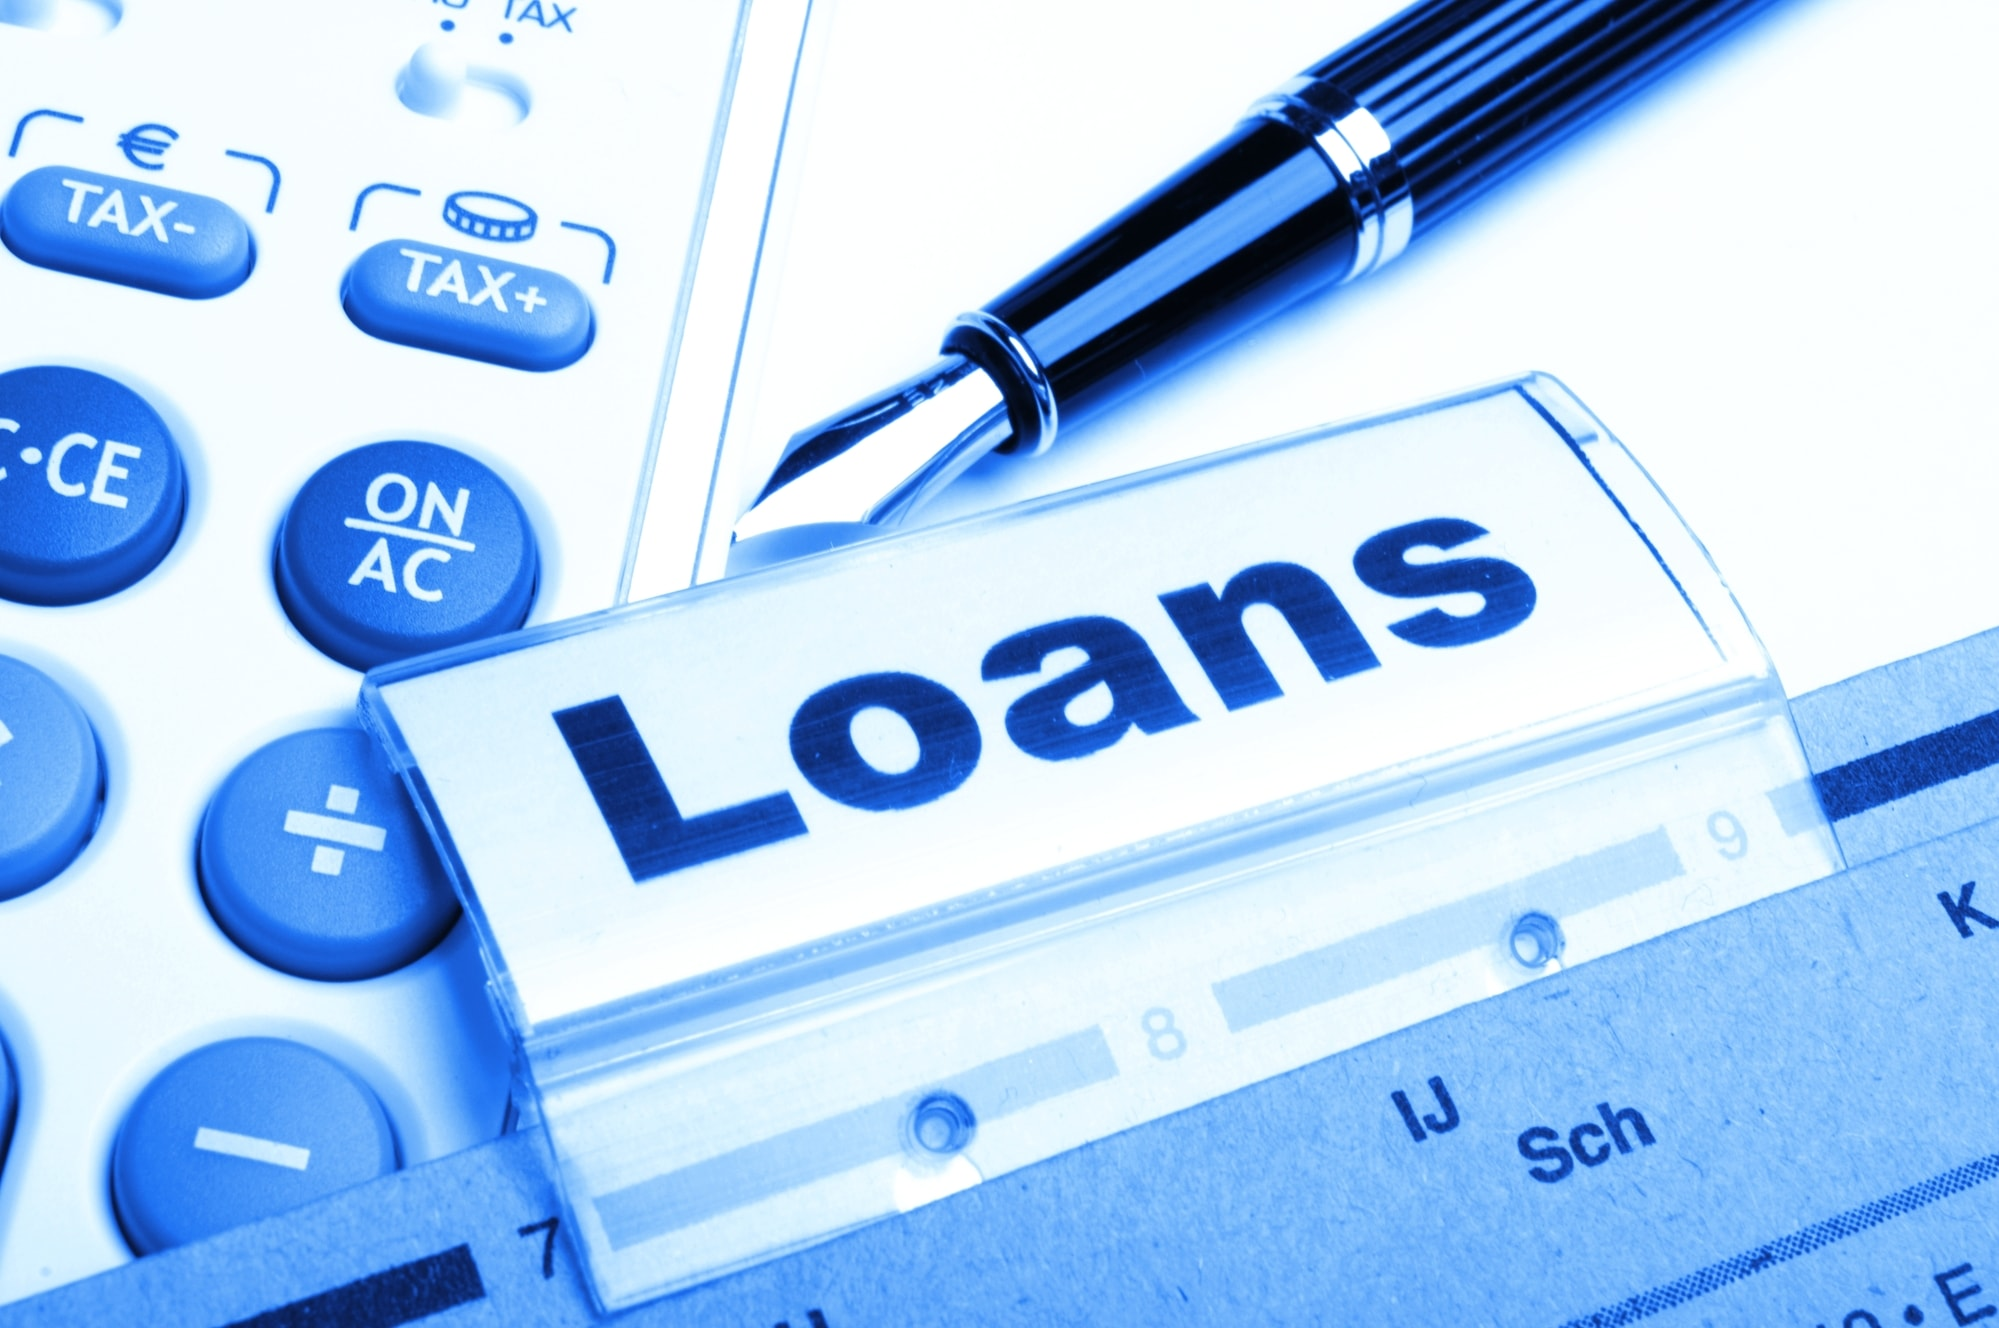 Best Bad Credit Loans in Canada 2021